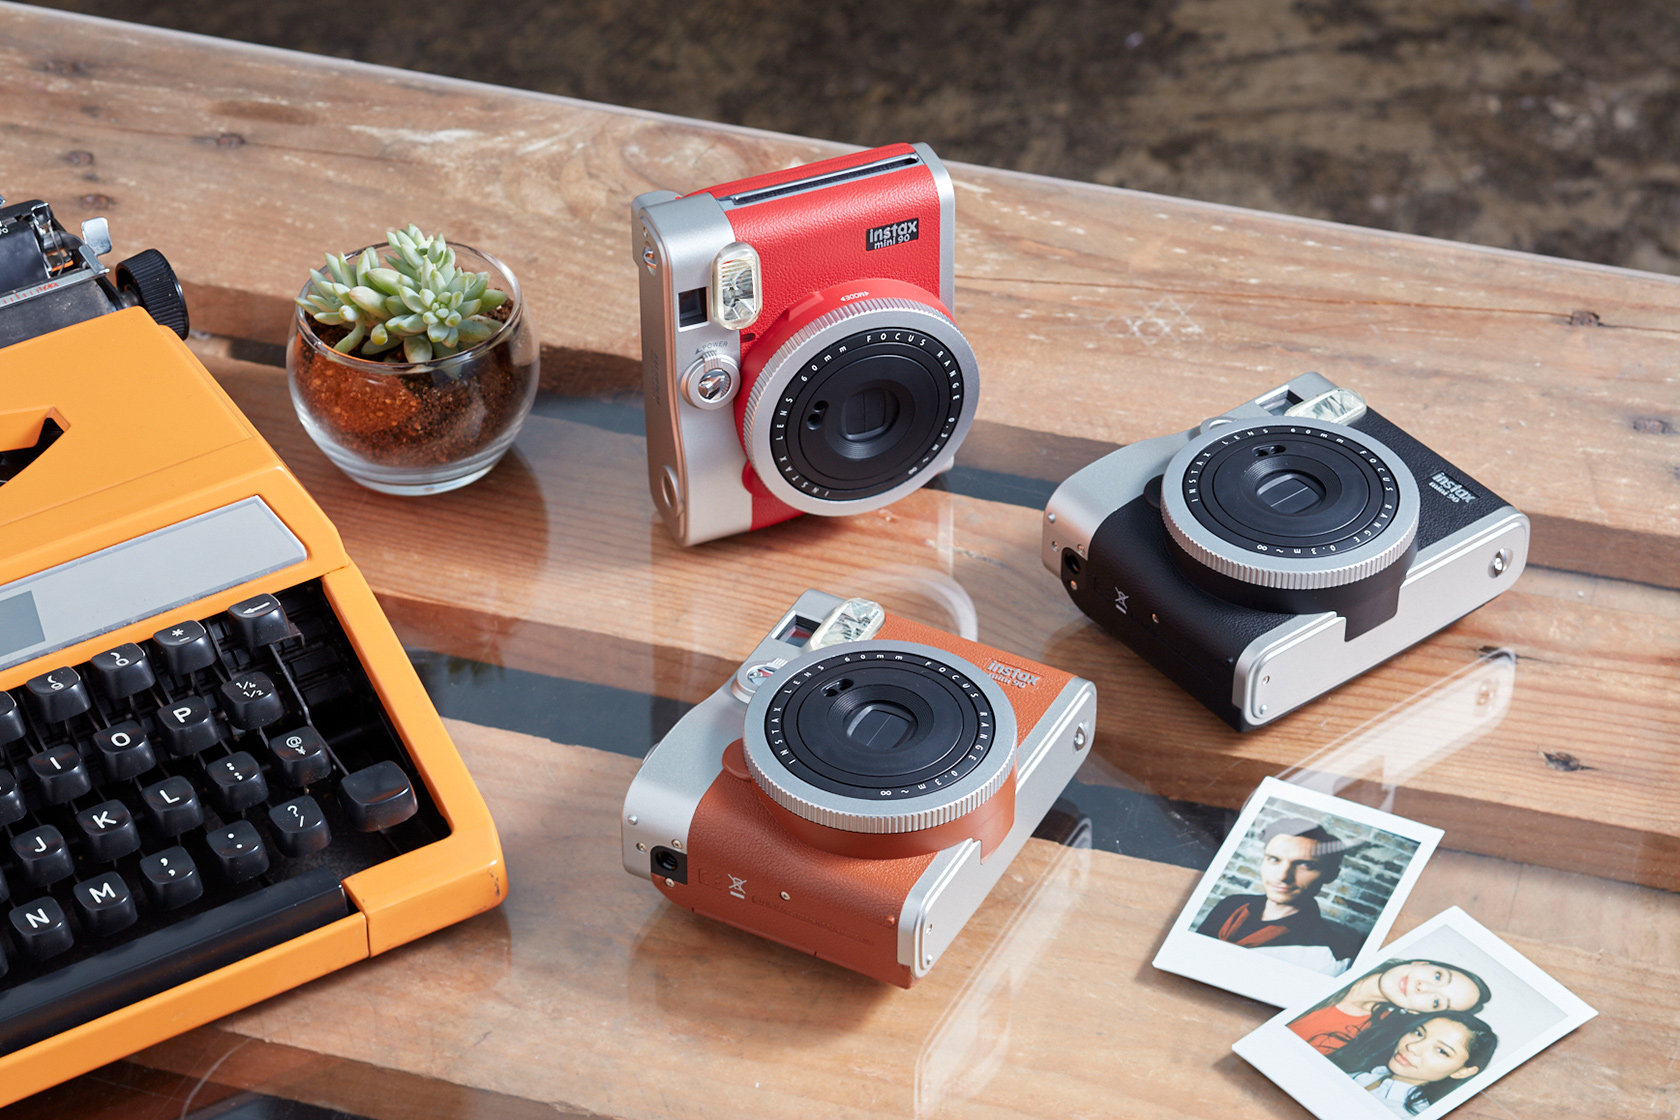 [photo] group of three INSTAX mini 90 cameras on wooden table